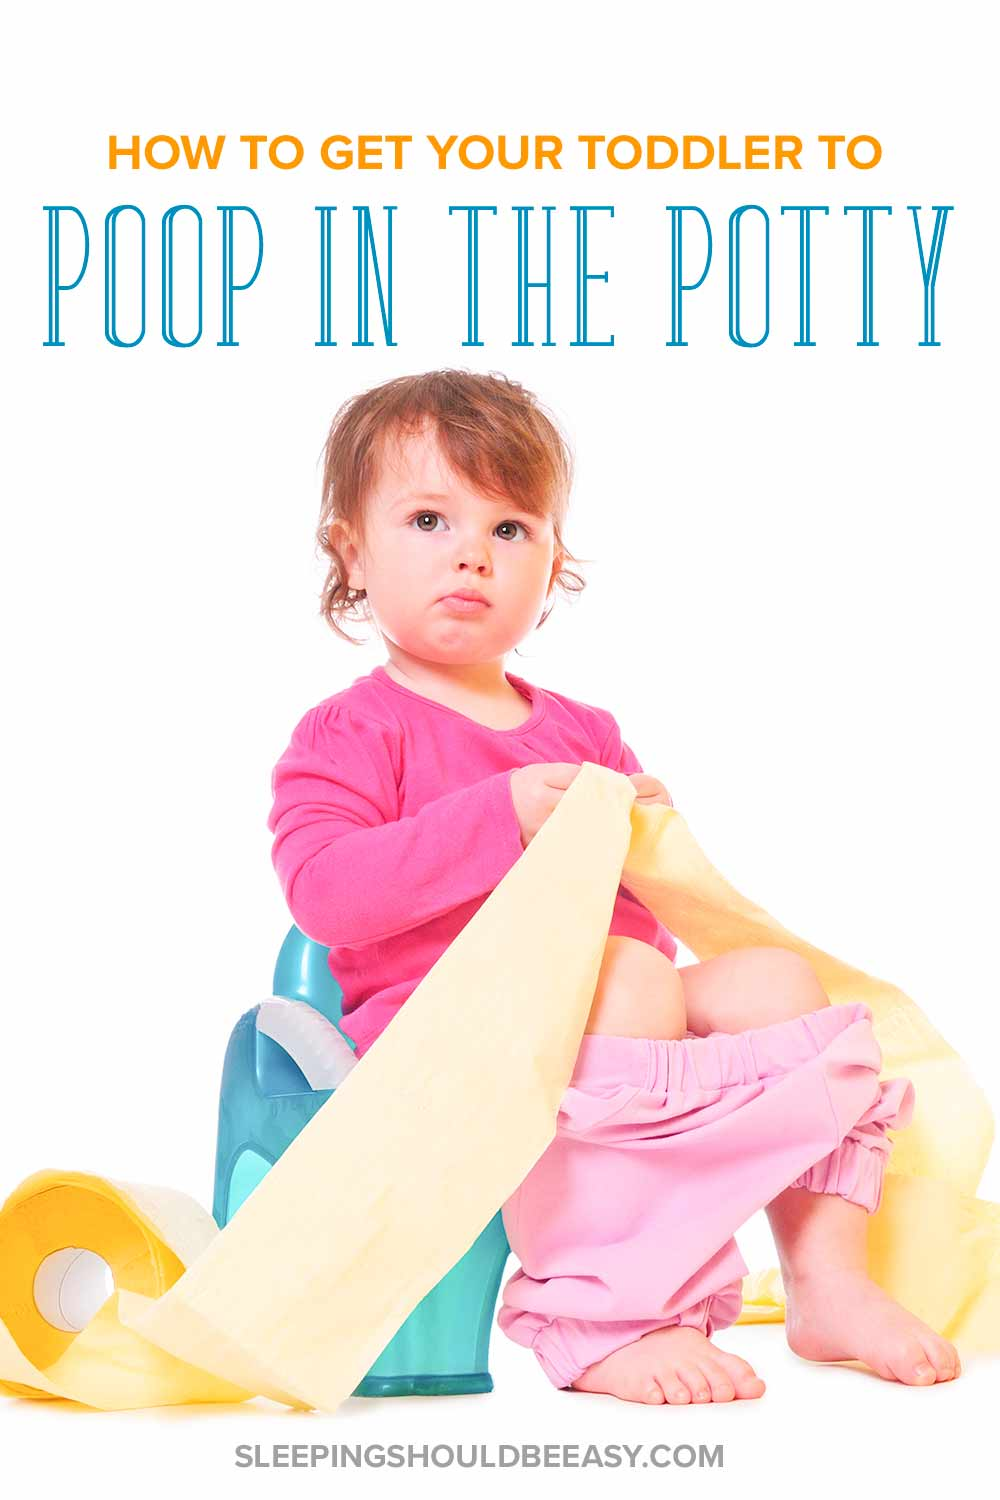 A little girl sitting on a potty: how to get your toddler to poop in the potty